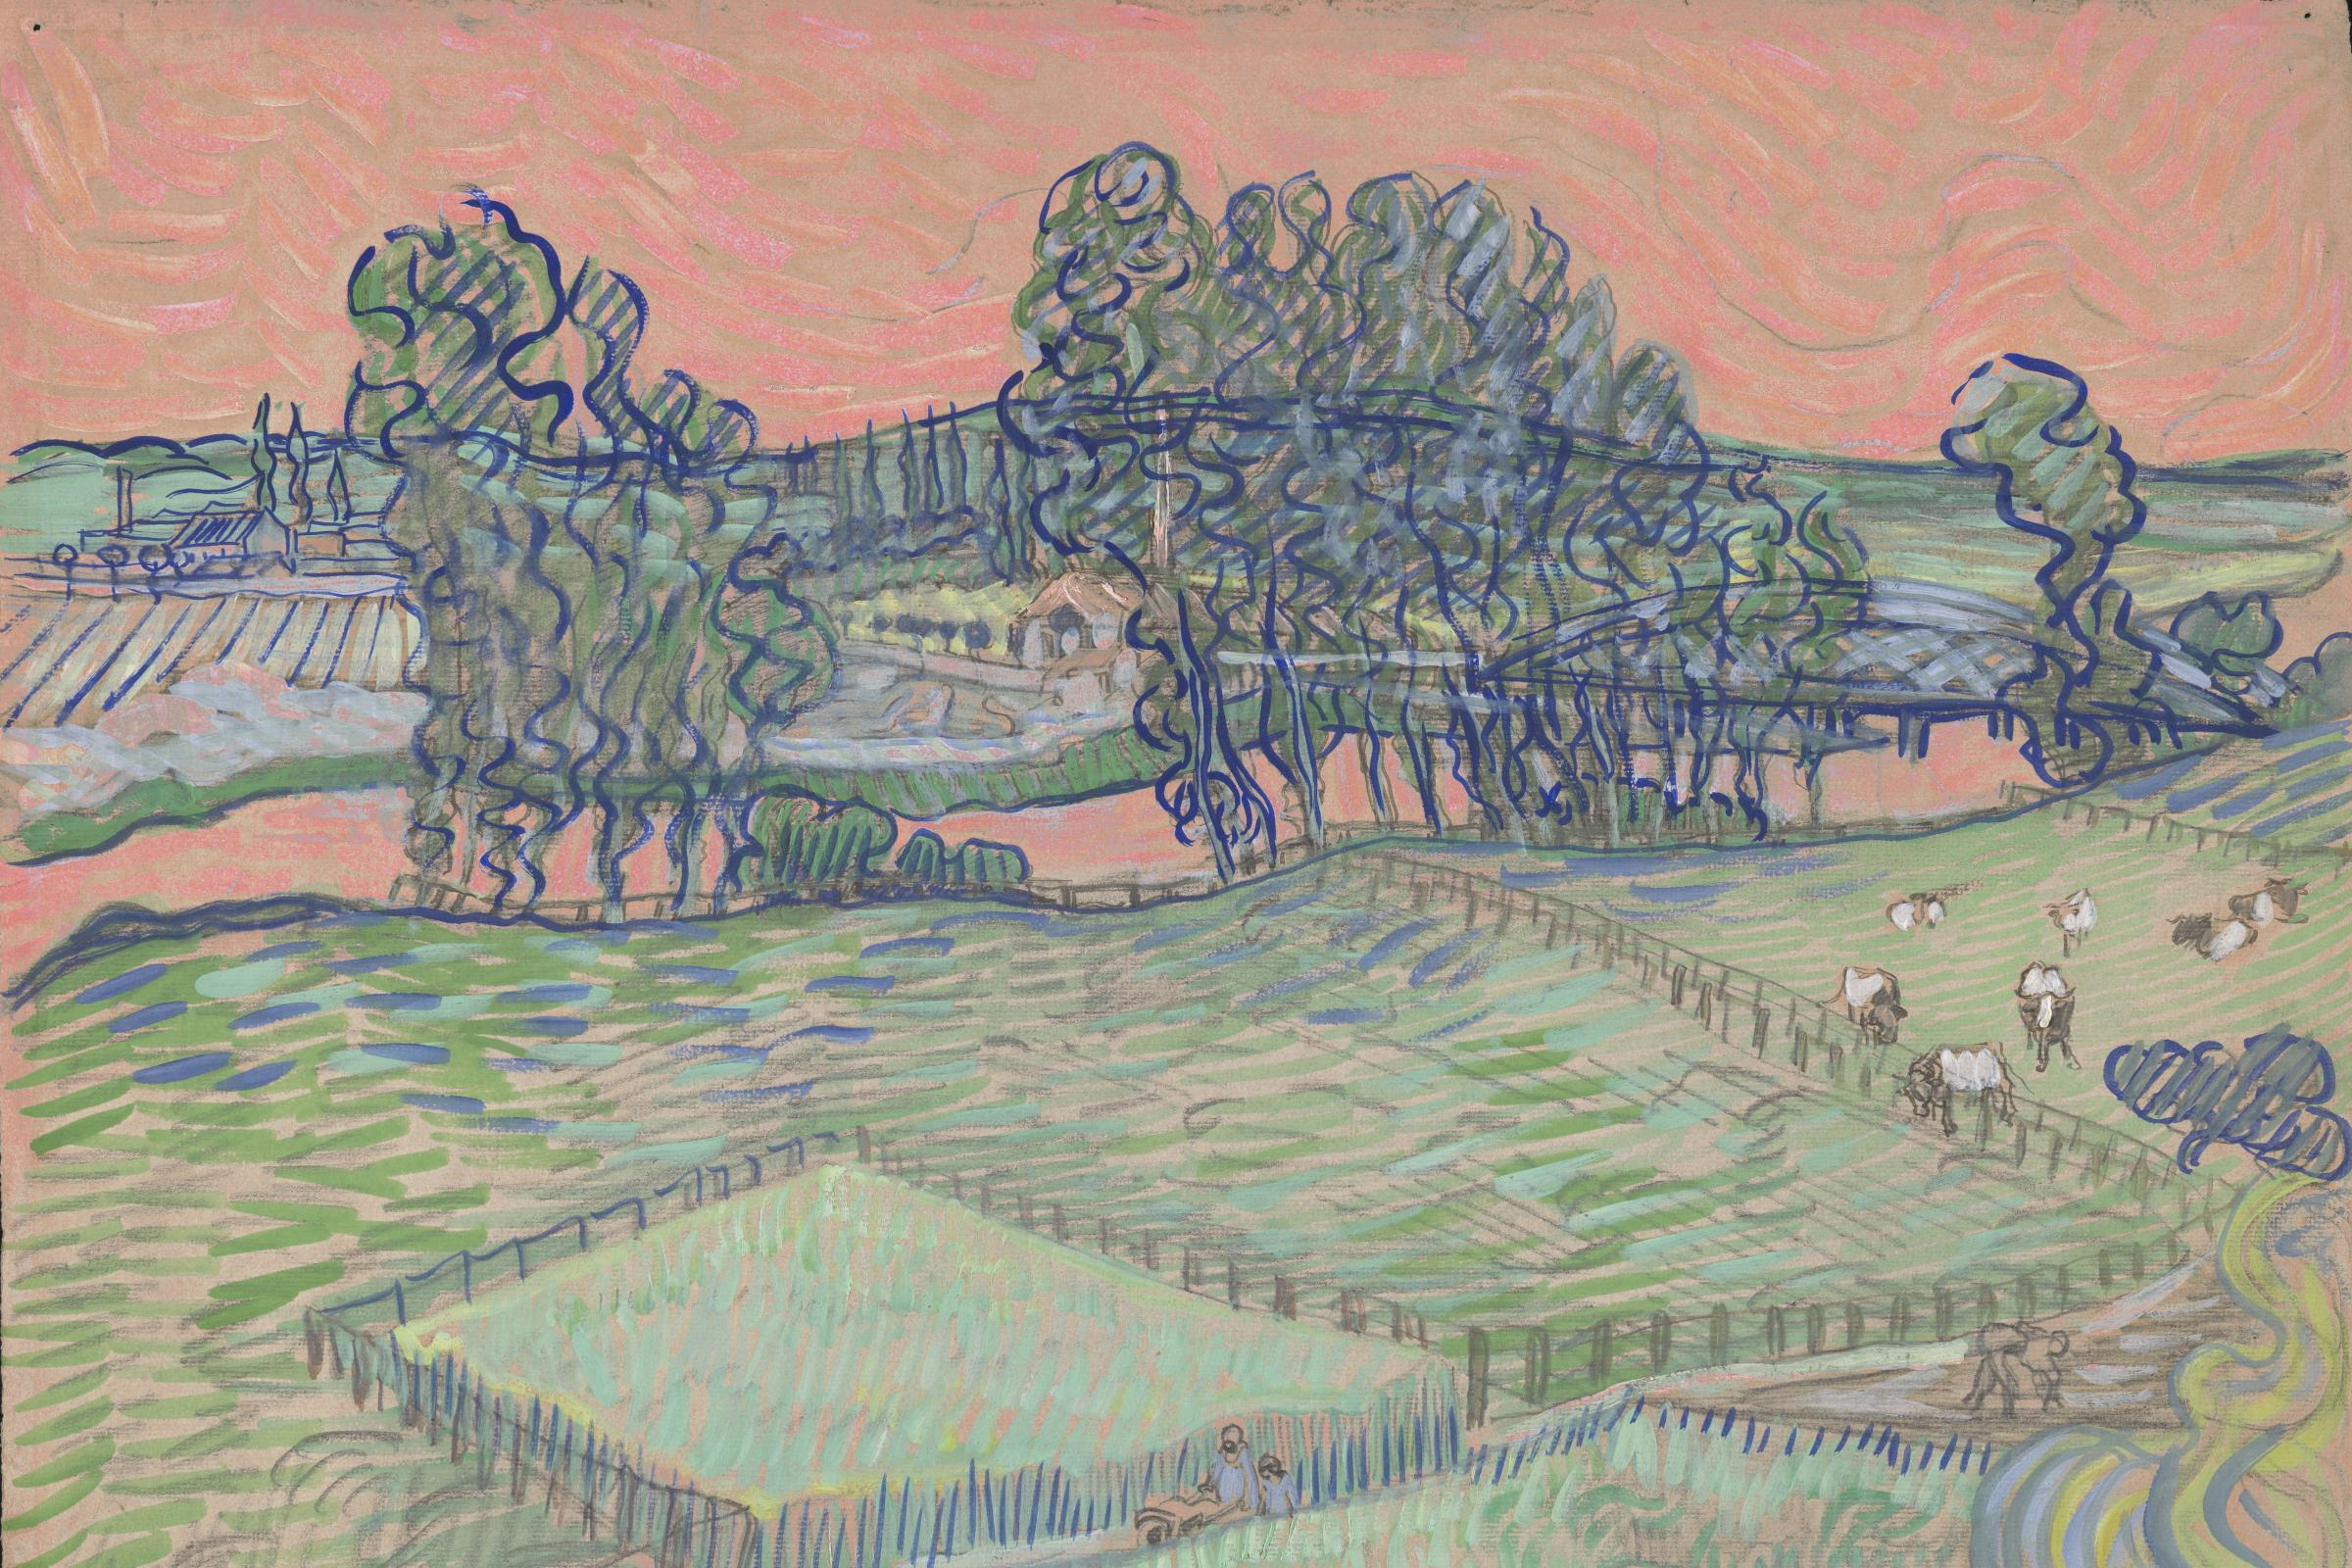 A digital reconstruction of Vincent Van Gogh's The Oise at Auvers